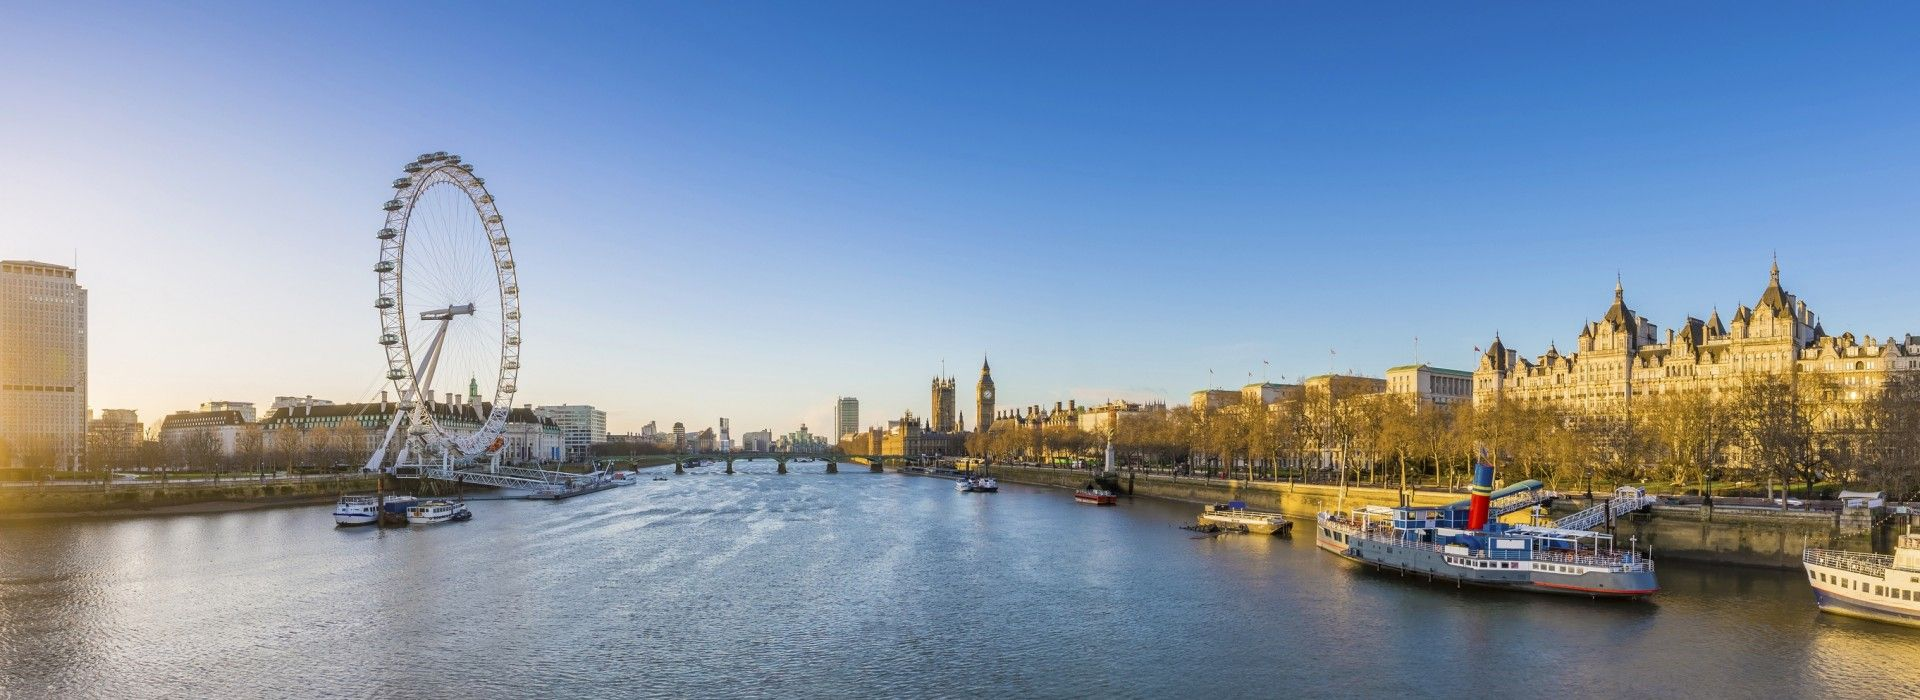 Boat tours, water sports and marine wildlife in London